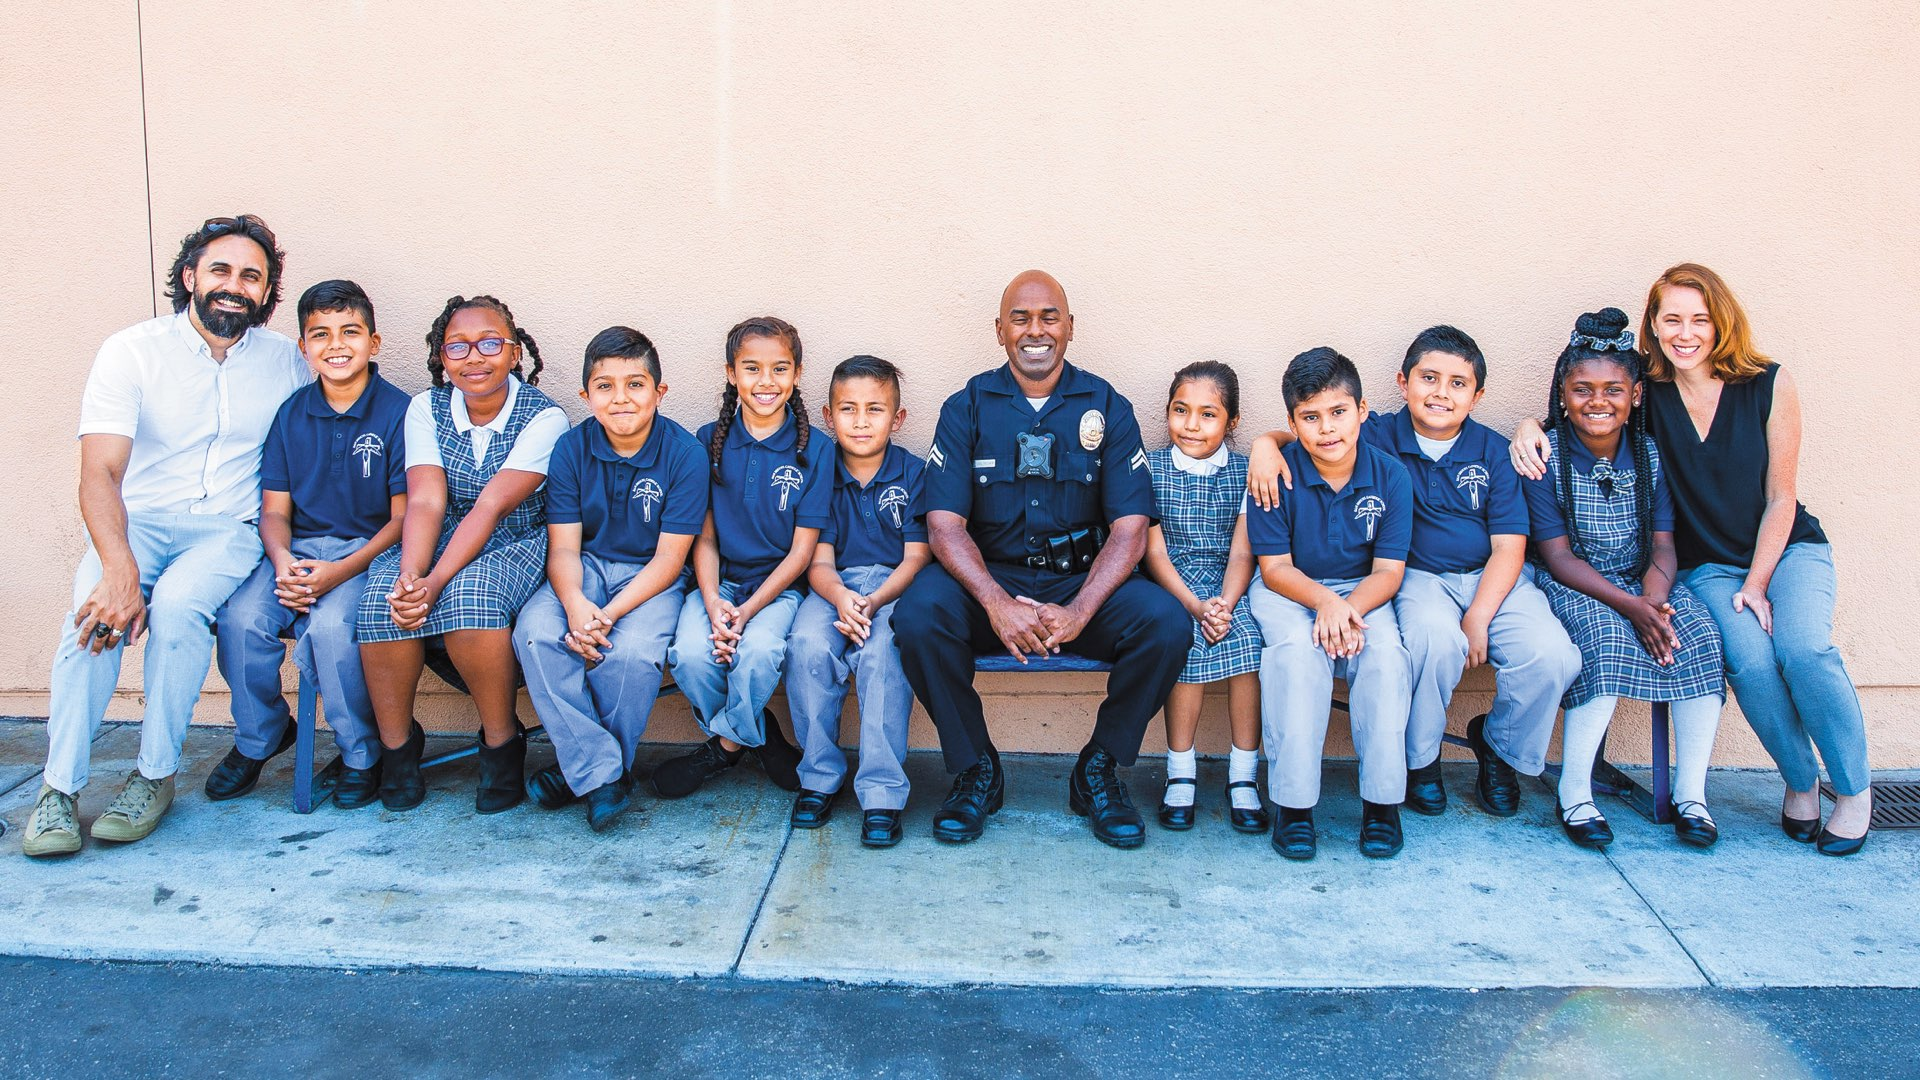 2003 Liberal Arts and Sciences alumna Theresa Gartland sitting on a bench with a group of schoolchildren and a police officer